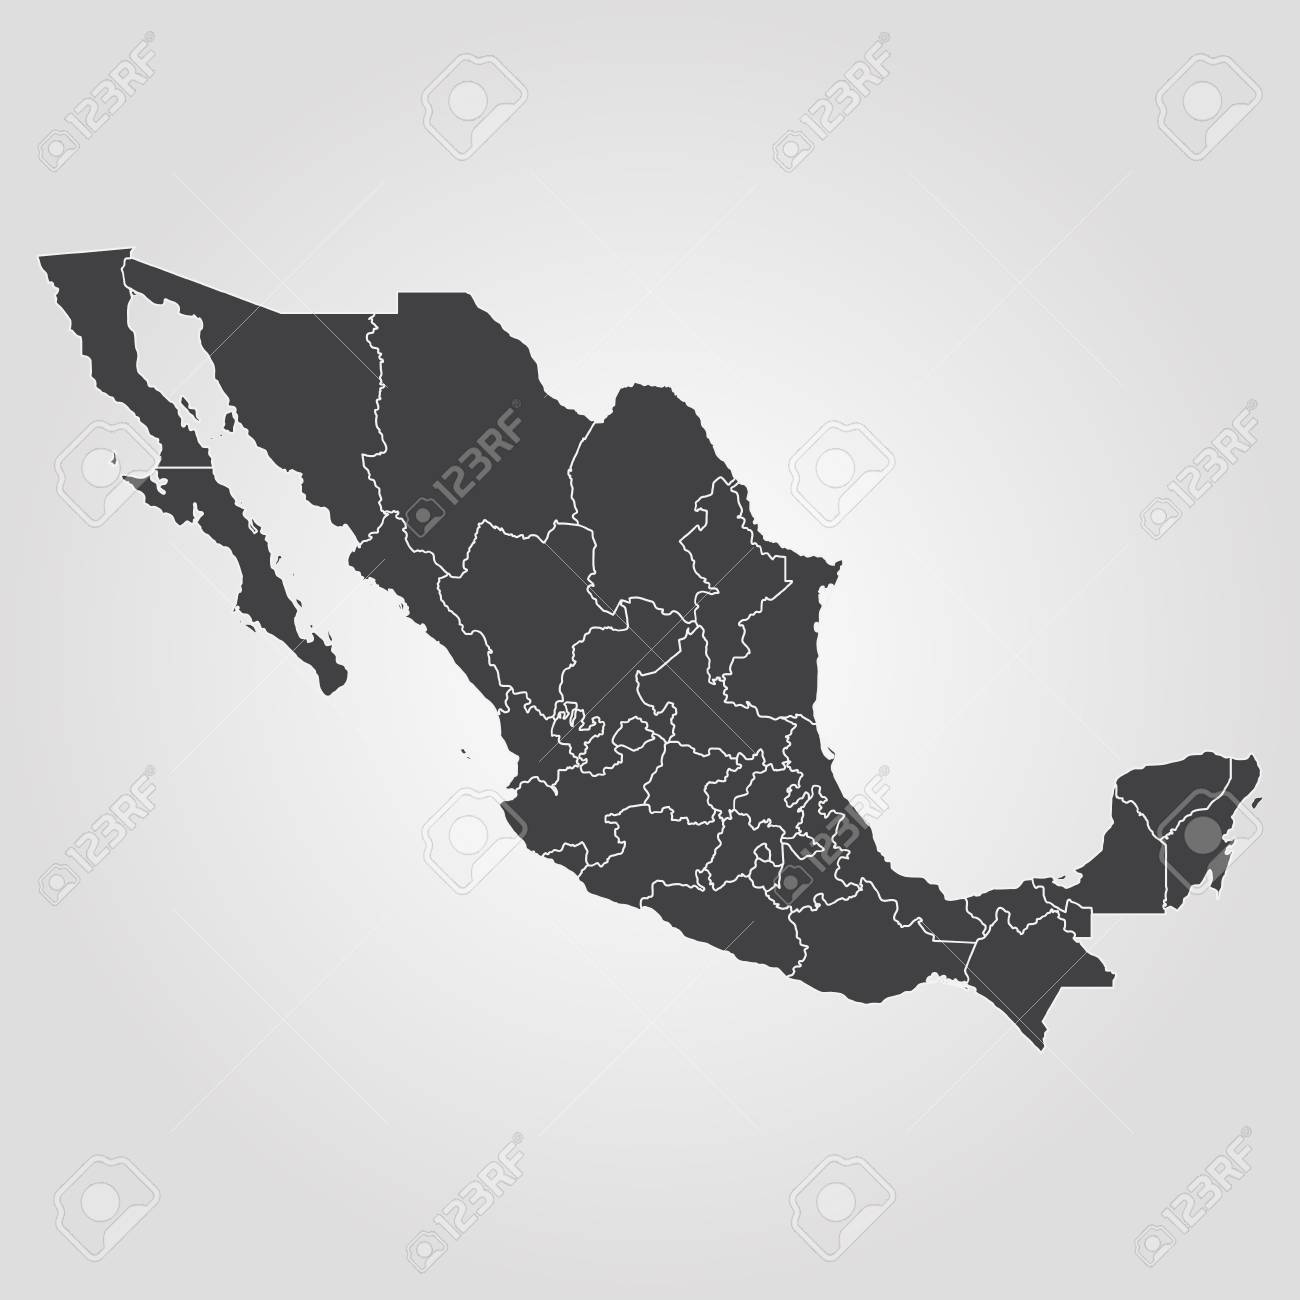 Map Of Mexico. Vector Illustration. World Map Royalty Free Cliparts ...